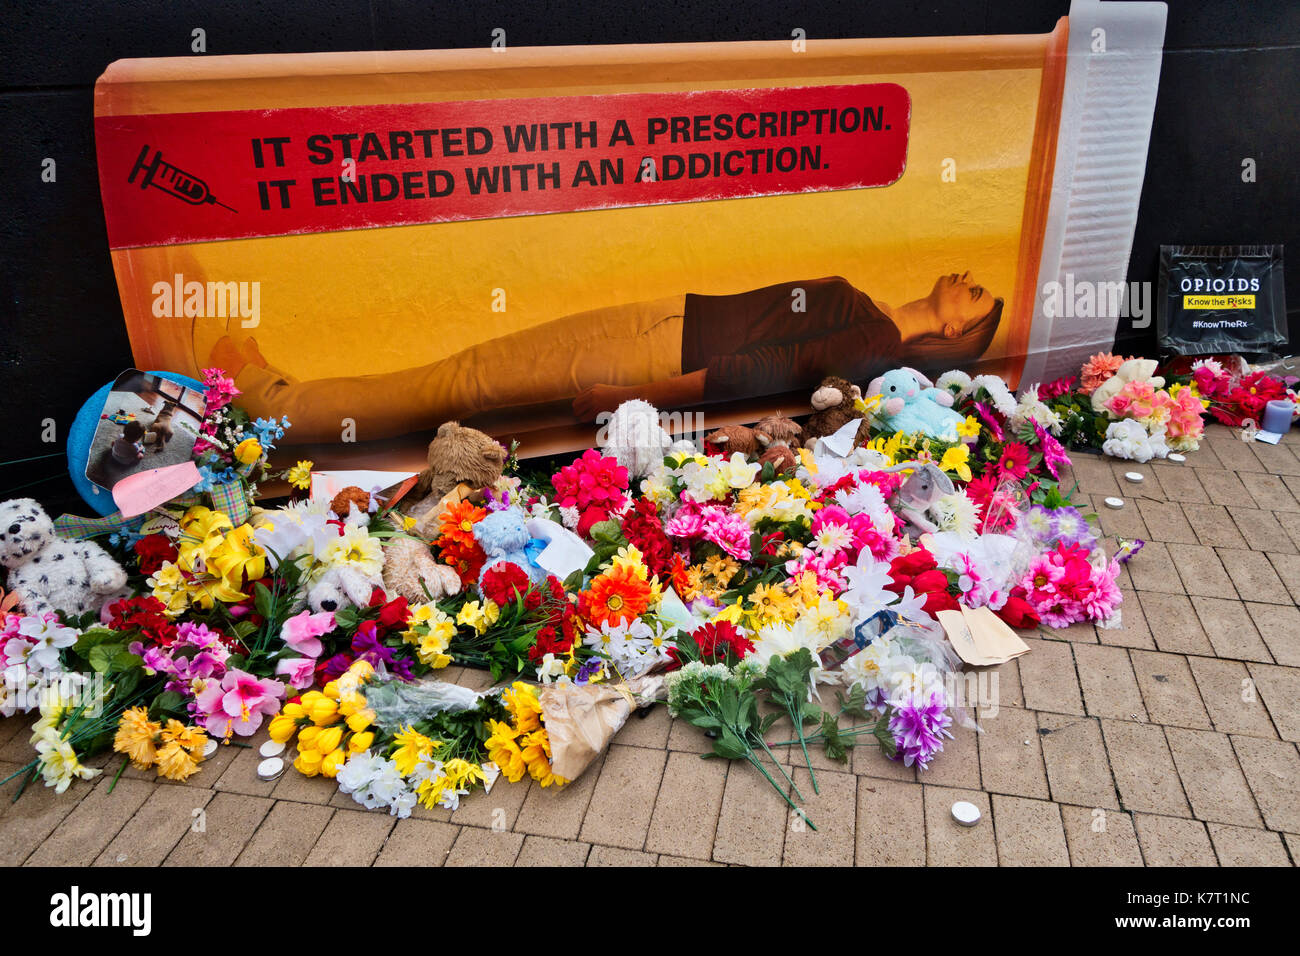 An advertisement discouraging the use of drugs and addiction, surrounded by many tributes of flowers.  Cleveland, Ohio, USA - Stock Image